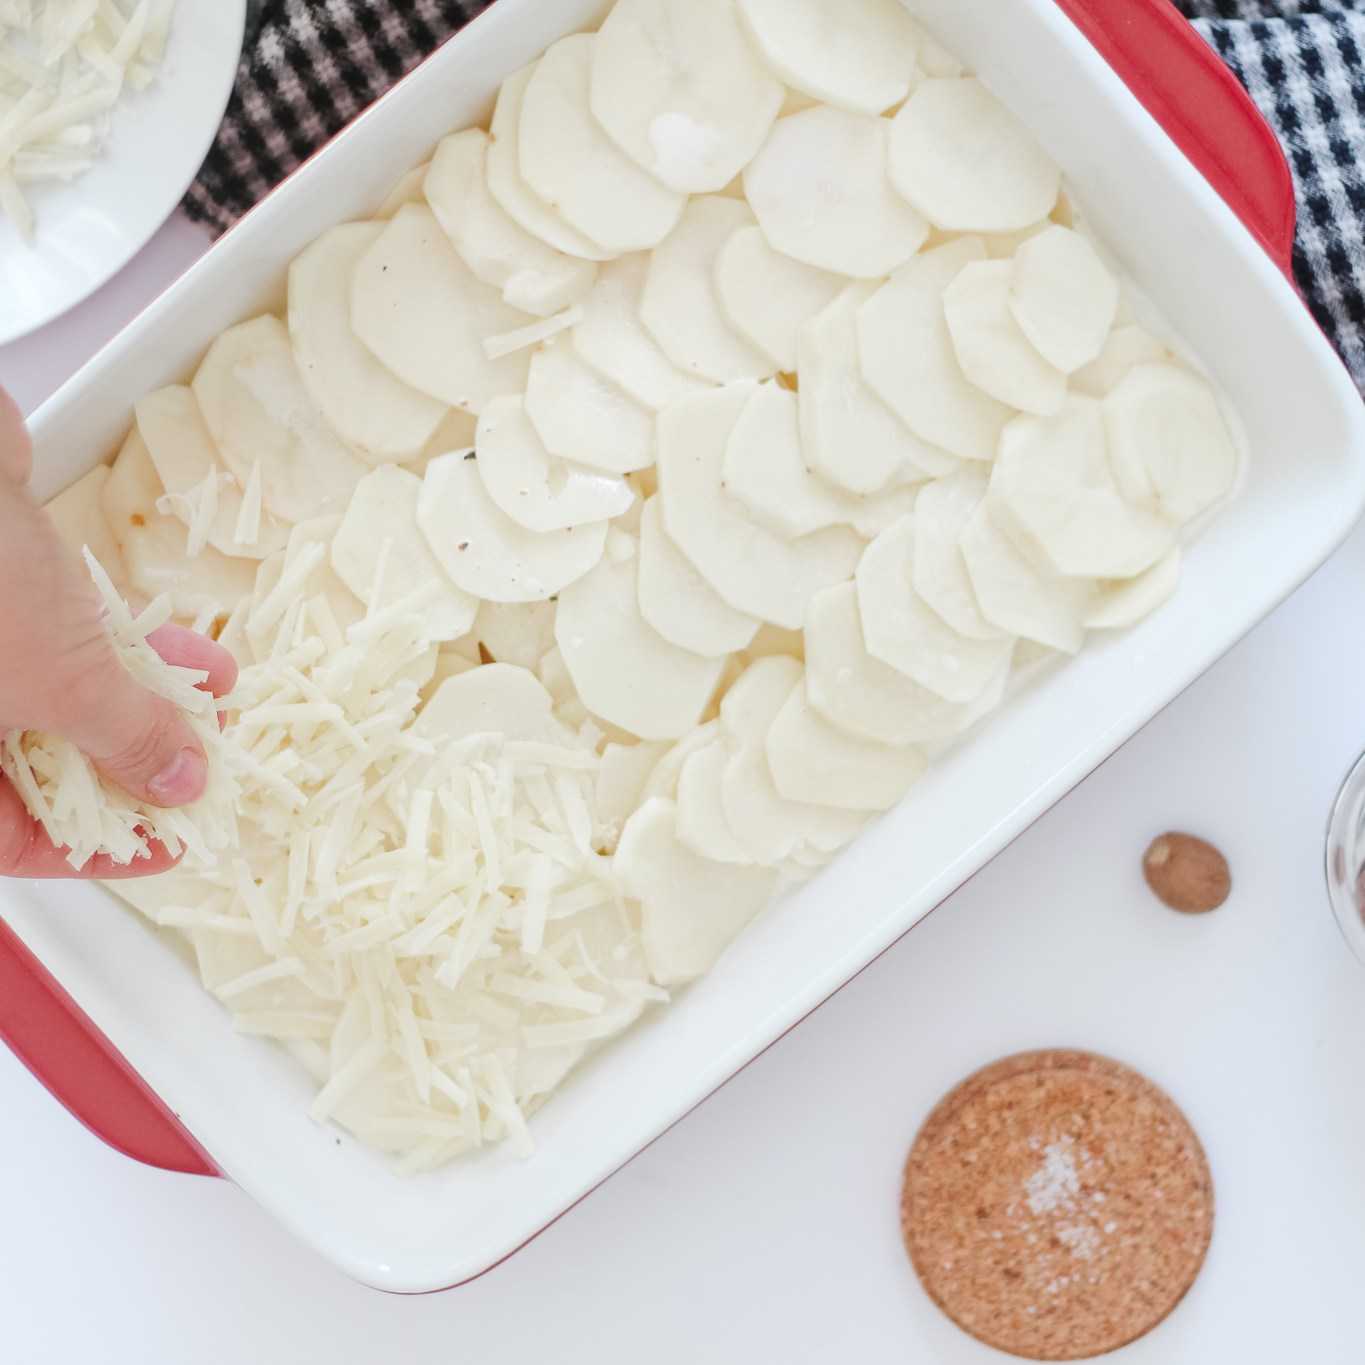 Sprinkling cheese on the sliced potatoes